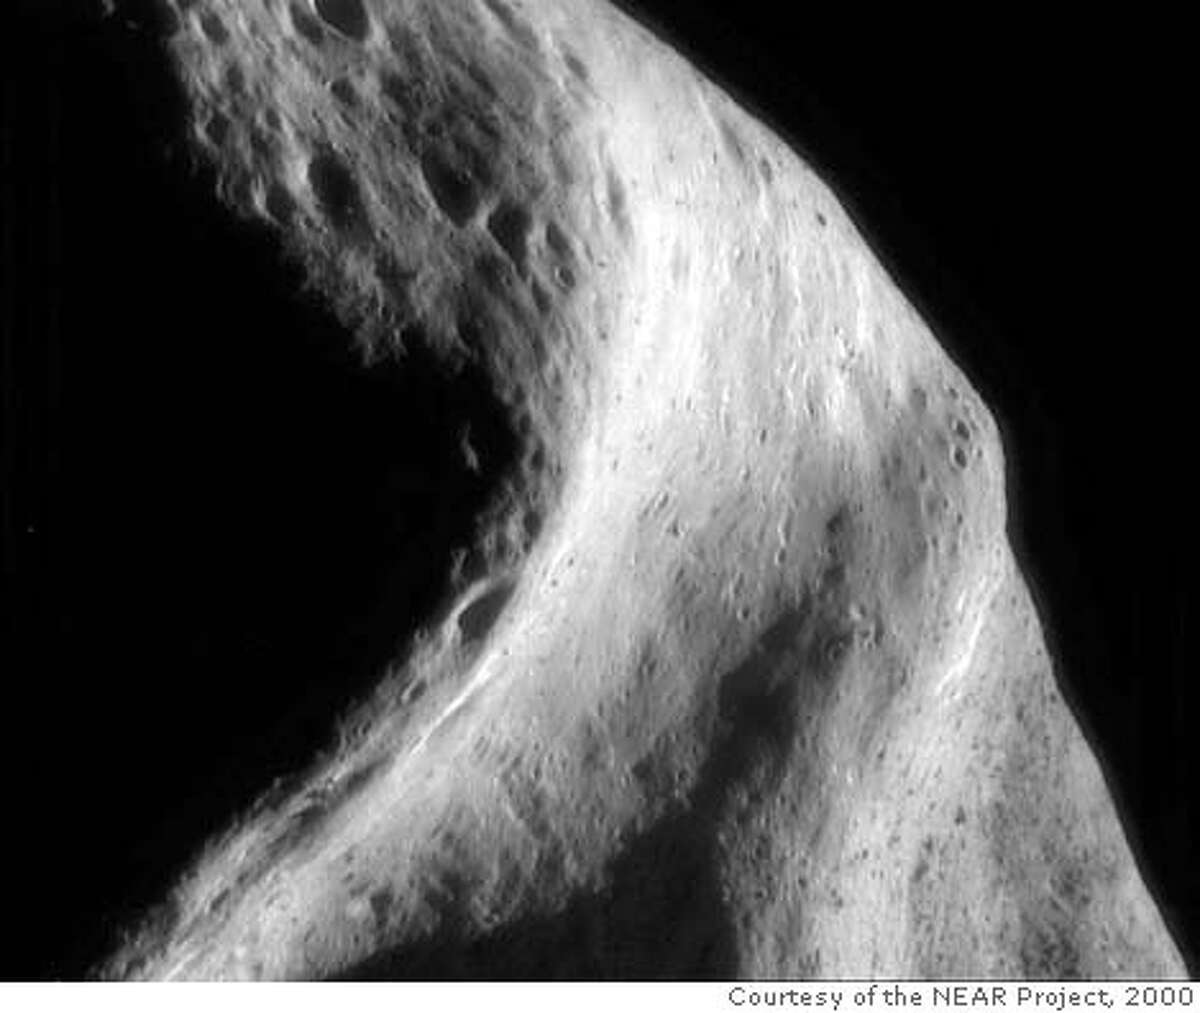 """The South Saddle NEAR Shoemaker's current 100-kilometer (62-mile) orbit gives it a bird's eye view of the asteroid. From this distance, only a handful of pictures are needed to create an image mosaic of a large area. This mosaic of four frames, photographed on September 26, 2000, was taken as the spacecraft looked down on the """"saddle"""" region from the south. The broad, curved depression that stretches vertically across the image is an area of the asteroid that was in shadow during the earlier 100-kilometer orbit, in April 2000. The area that appears speckled at the lower right is the same boulder-rich area featured as the April 4, 2000, Image-of-the-Day. The boulders are easily visible in the full-sized version of today's image. (Mosaic of images 0145364037, 0145363975, 0145363913, 0145363851) Captions and images courtesy of the NEAR Project (JHU/APL)."""